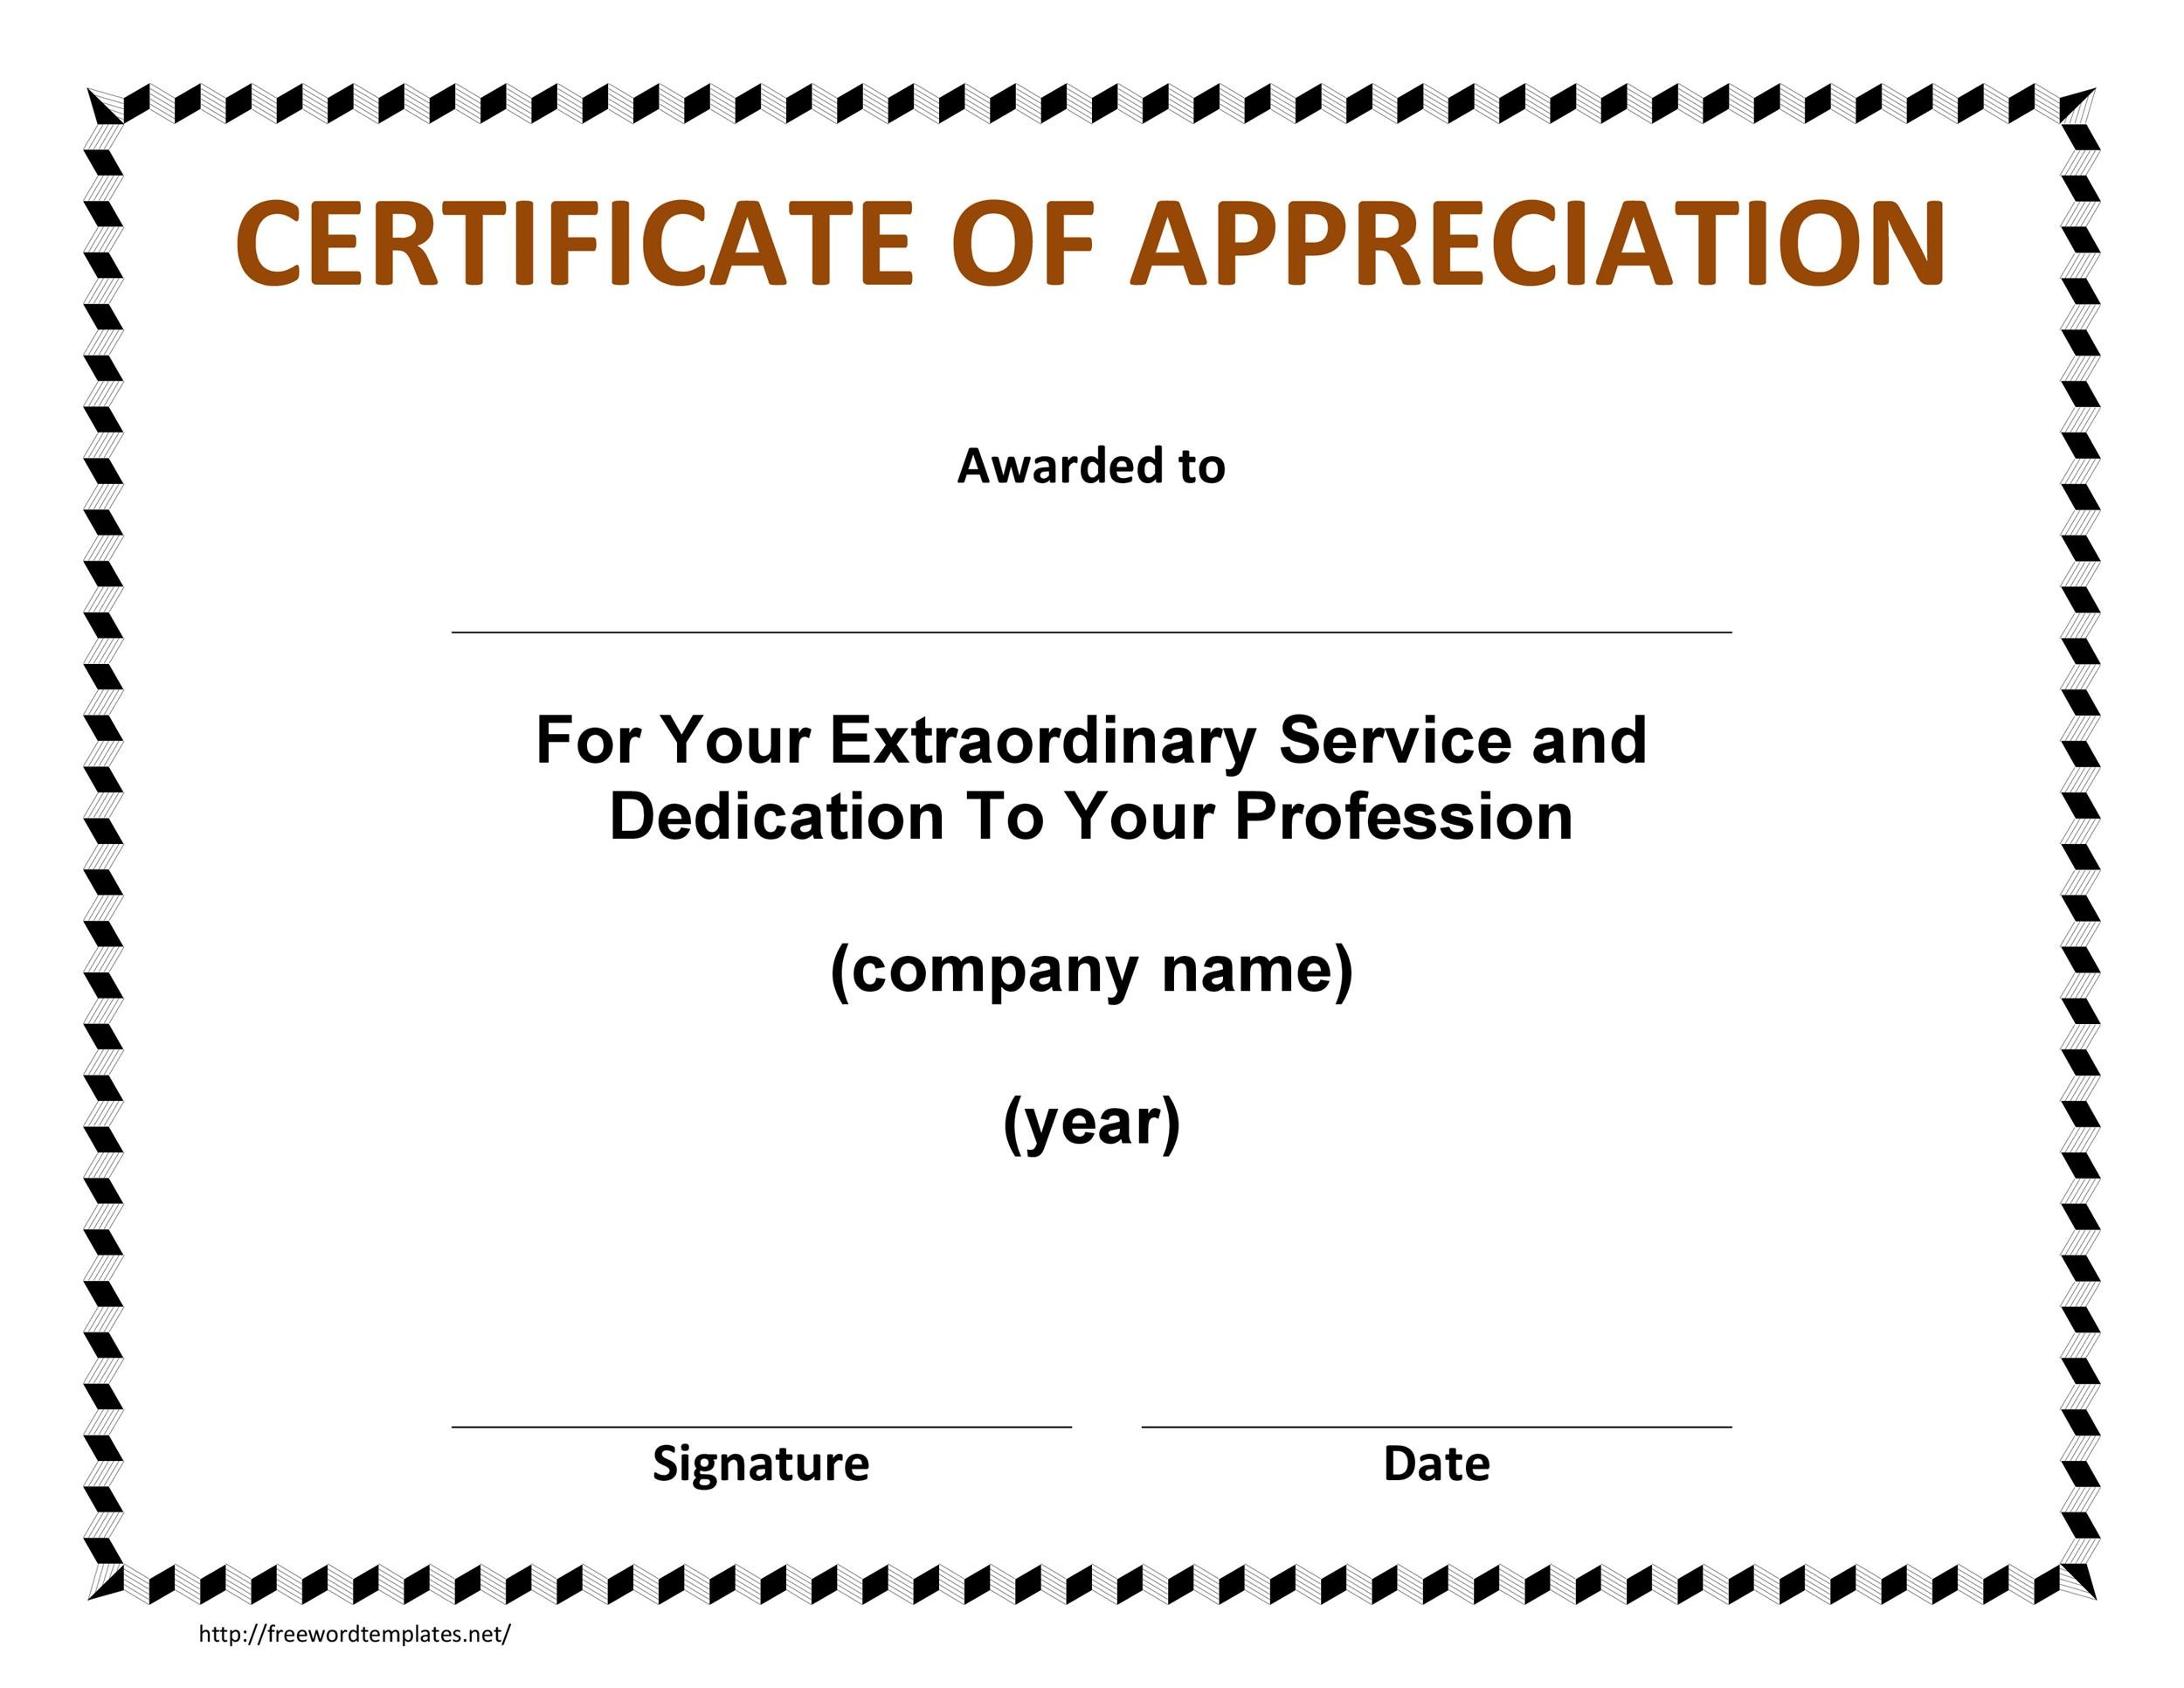 30 free certificate of appreciation templates and letters printable certificate of appreciation 04 altavistaventures